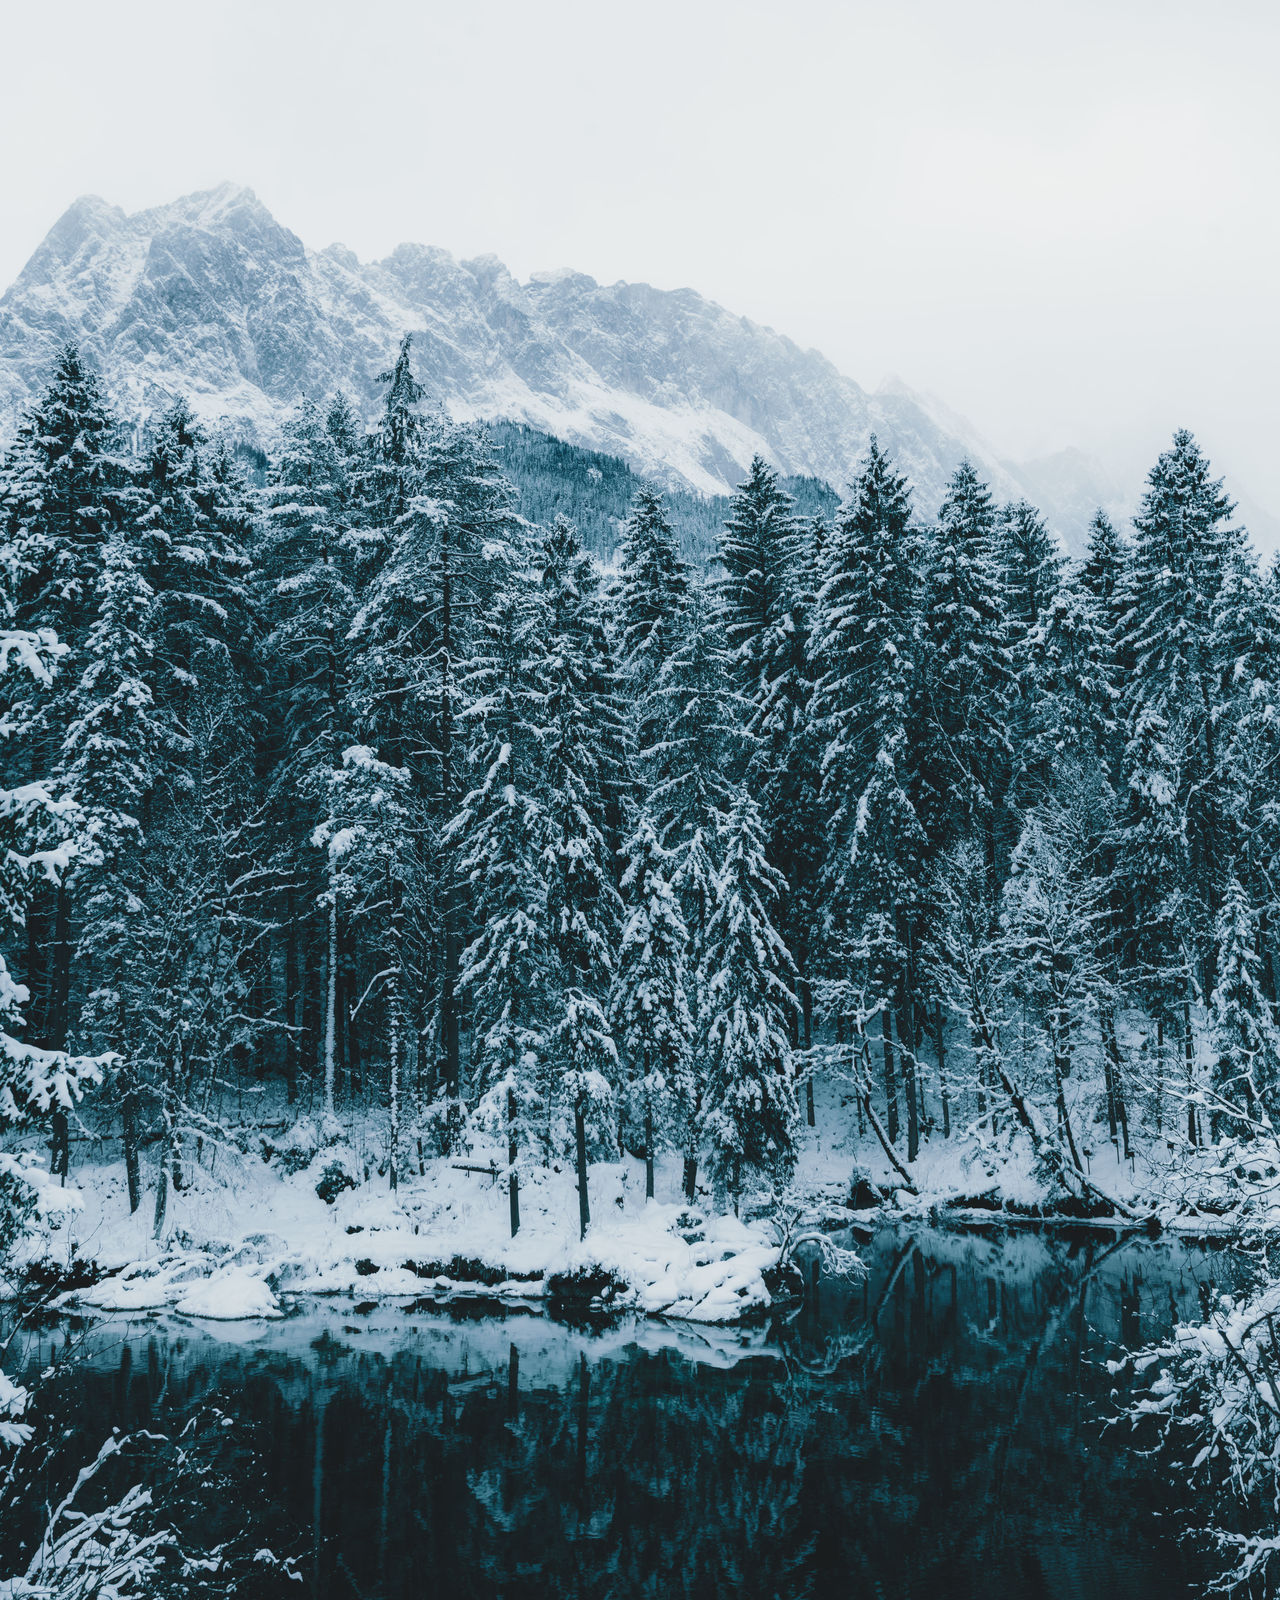 forest and lake in front of mountains Beauty In Nature Close-up Cold Temperature Day EyeEm Best Shots Landscape_Collection Mountain Nature No People Outdoors Snow Snowing TheWeekOnEyeEM Tree Winter